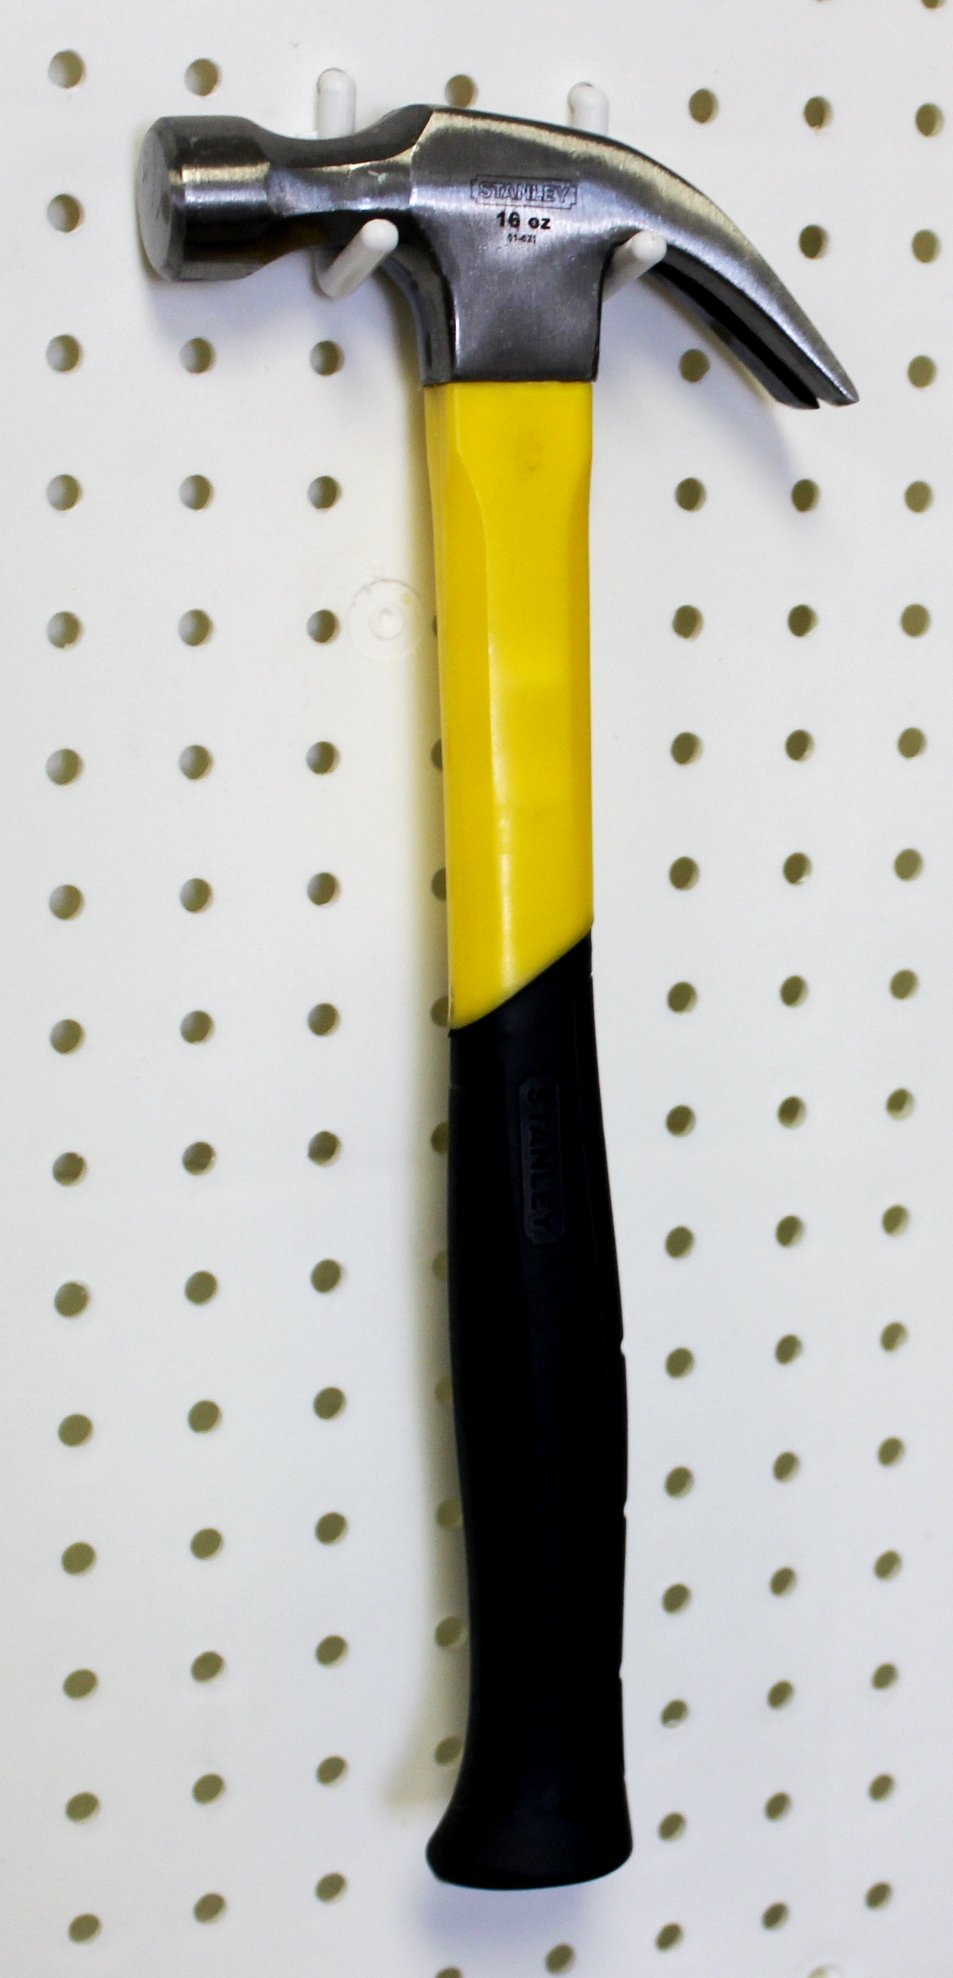 WallPeg 80 pc. Assorted White Peg Hooks - Garage Storage & Tool Organizer by WallPeg (Image #5)